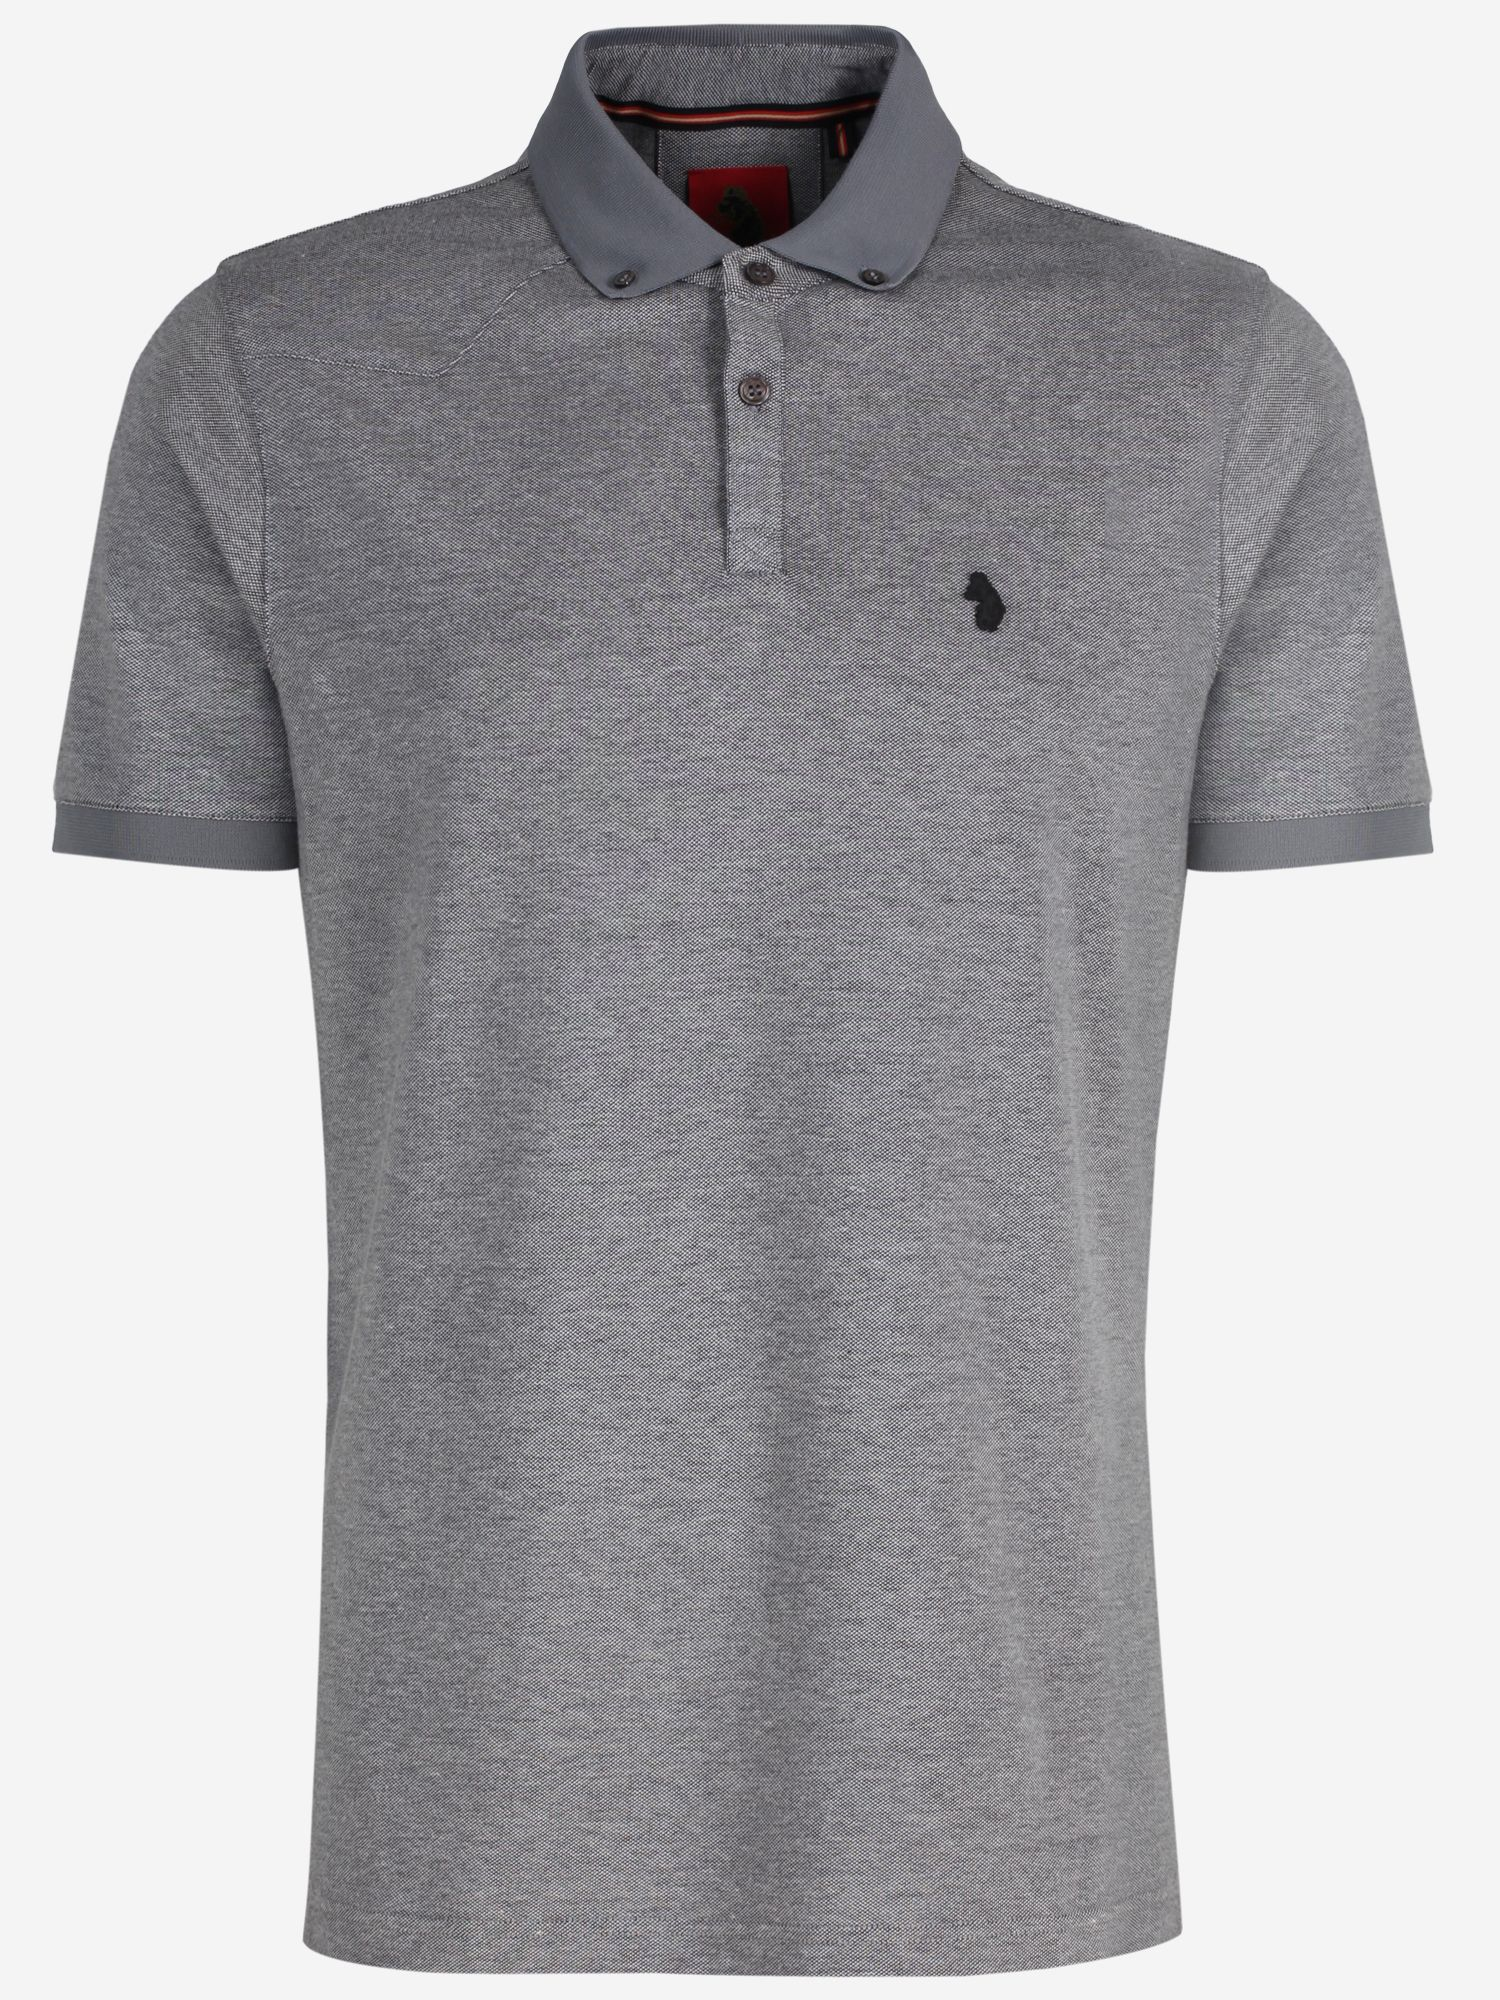 Men's Luke 1977 Billiam Polo Shirt, Grey